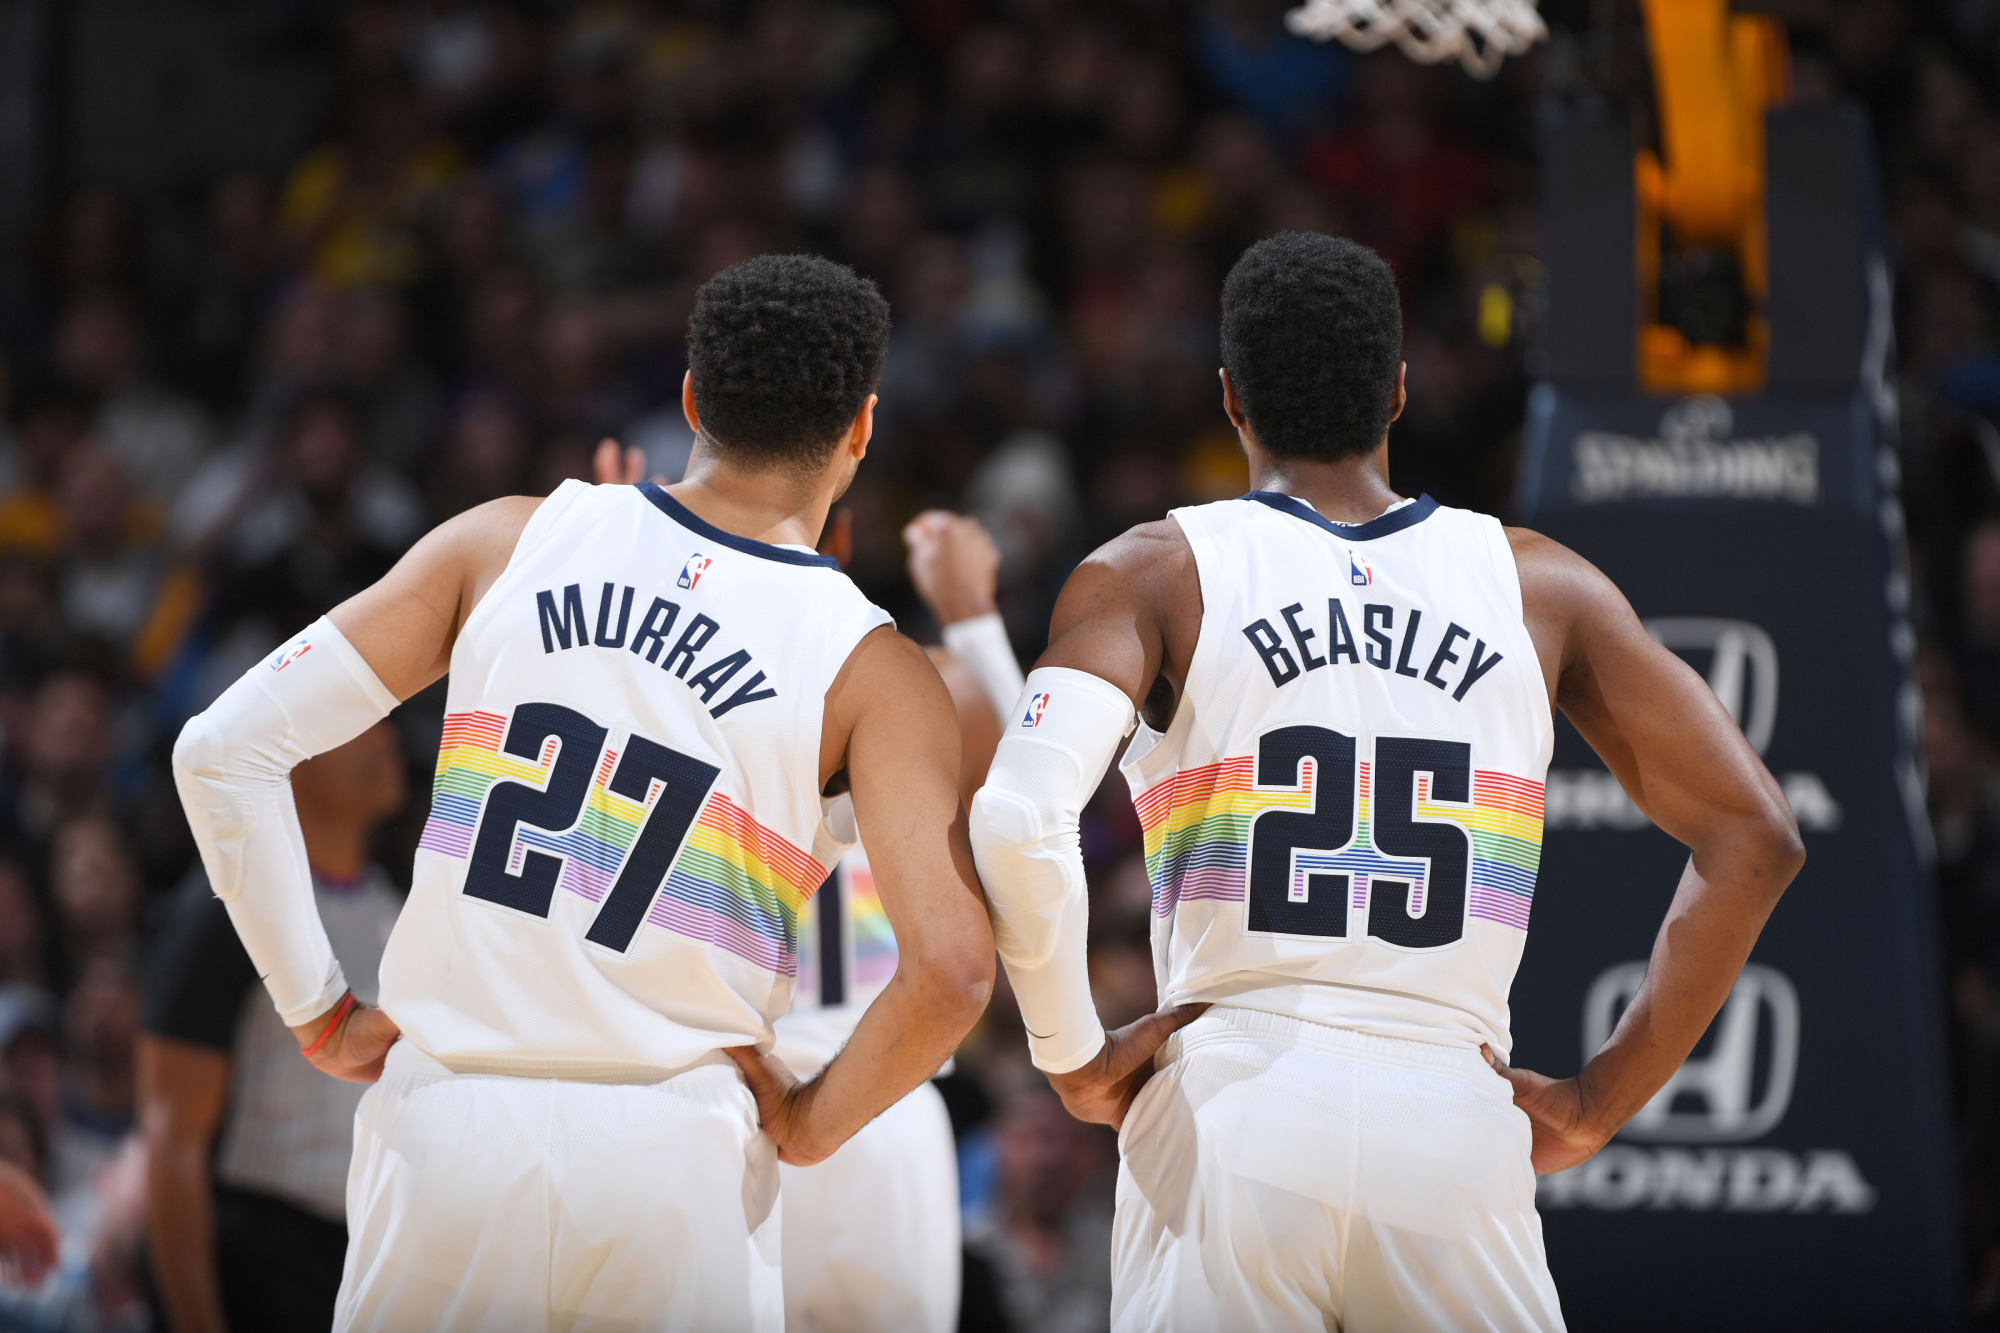 Denver Nuggets vs. Lakers: Player of the game in Denver